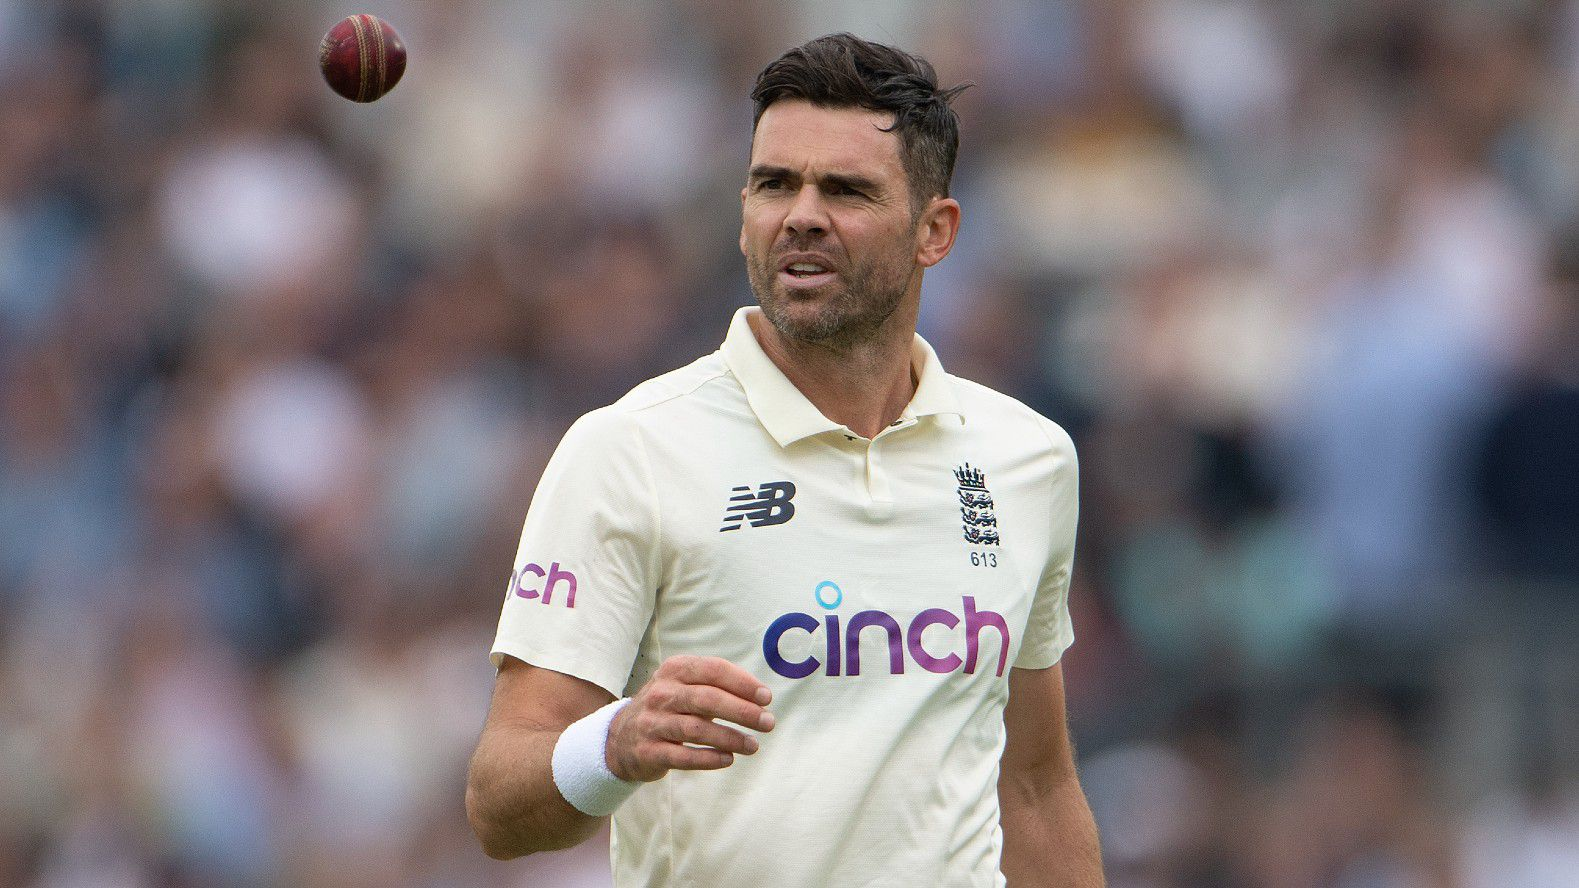 Anderson fires back at Paine ahead of Ashes